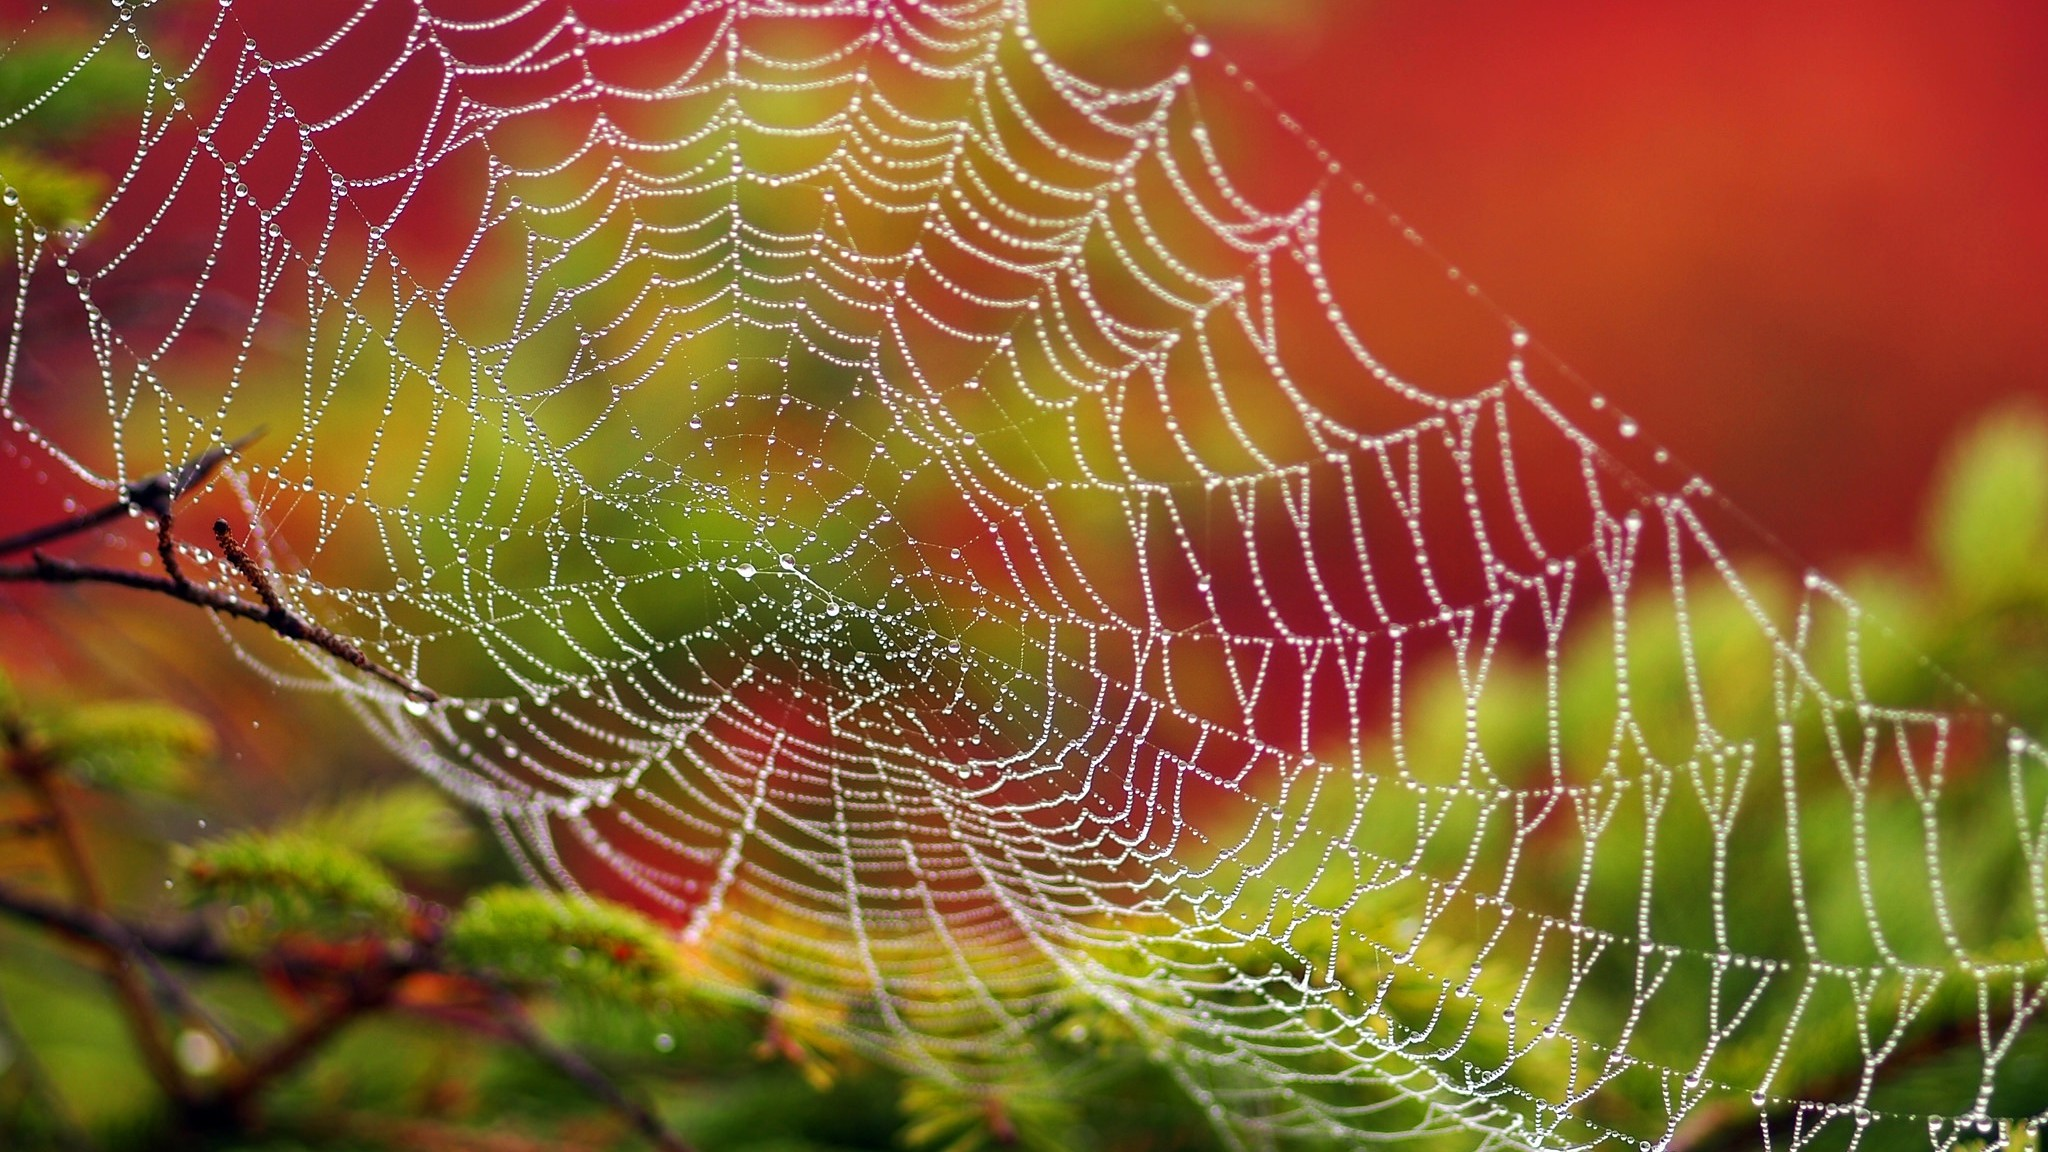 2048x1152  Wallpaper spider web, drops, dew, close-up